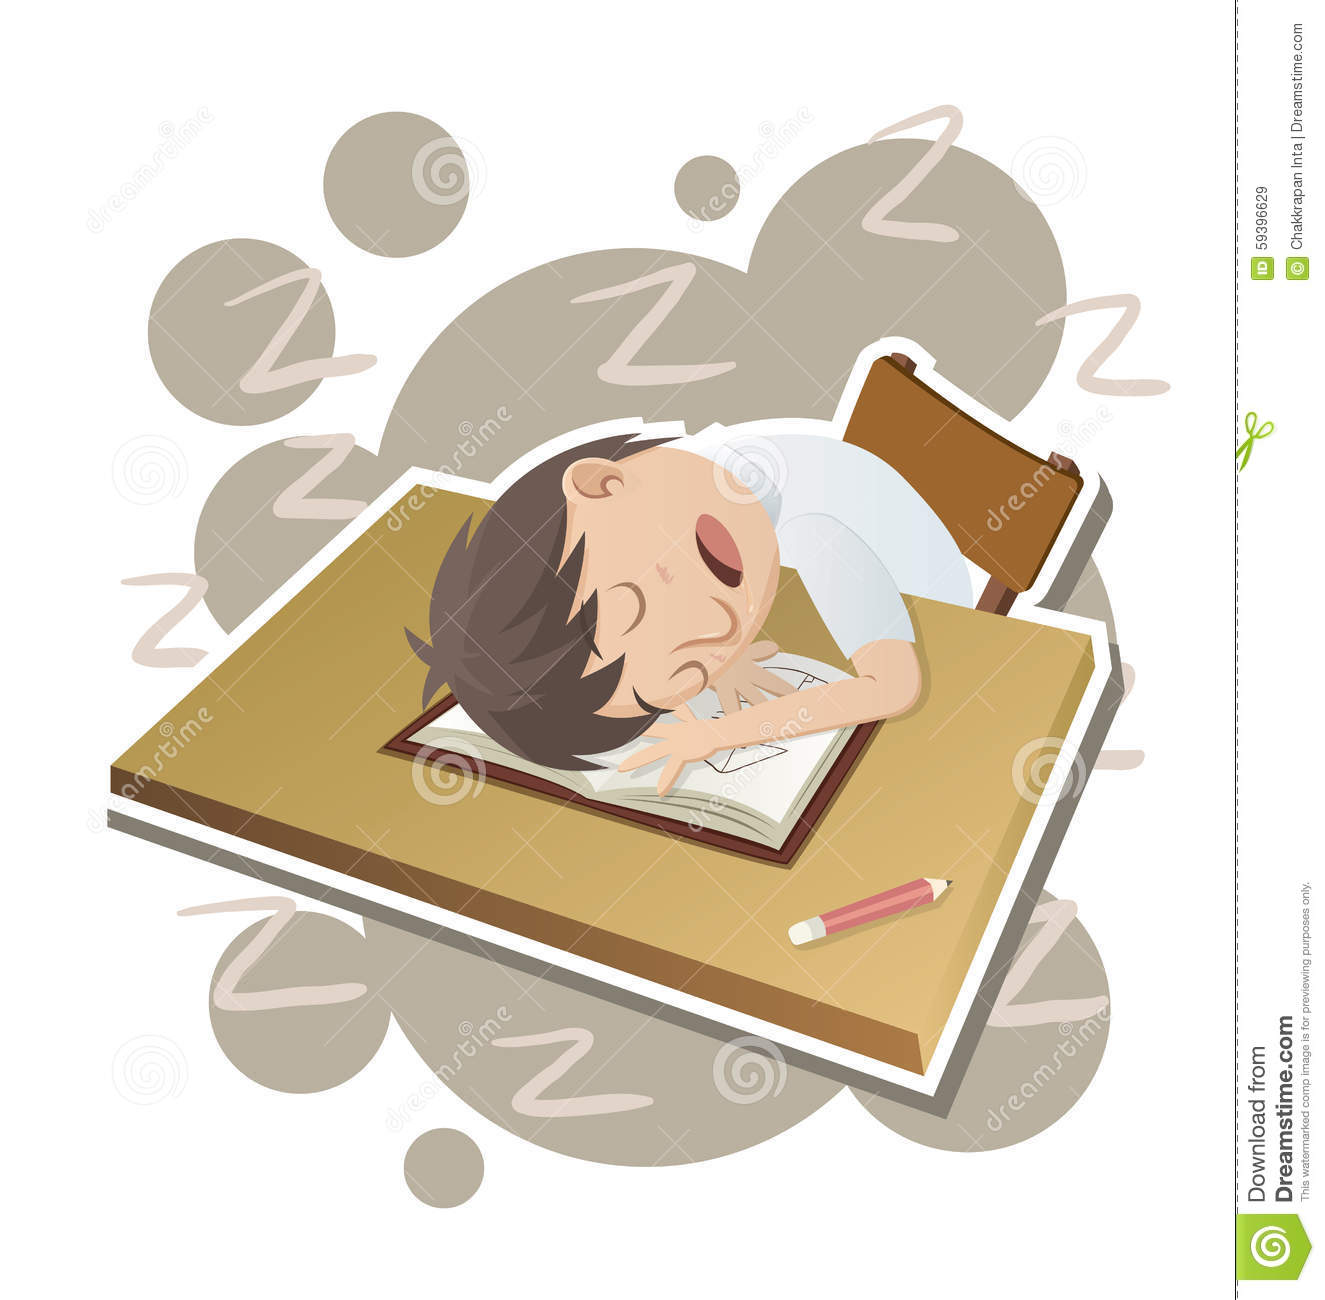 Creative Hand Painted Scenes Student Sleeping, Cartoon, Boy, Learning PNG  Transparent Clipart Image and PSD File for Free Download